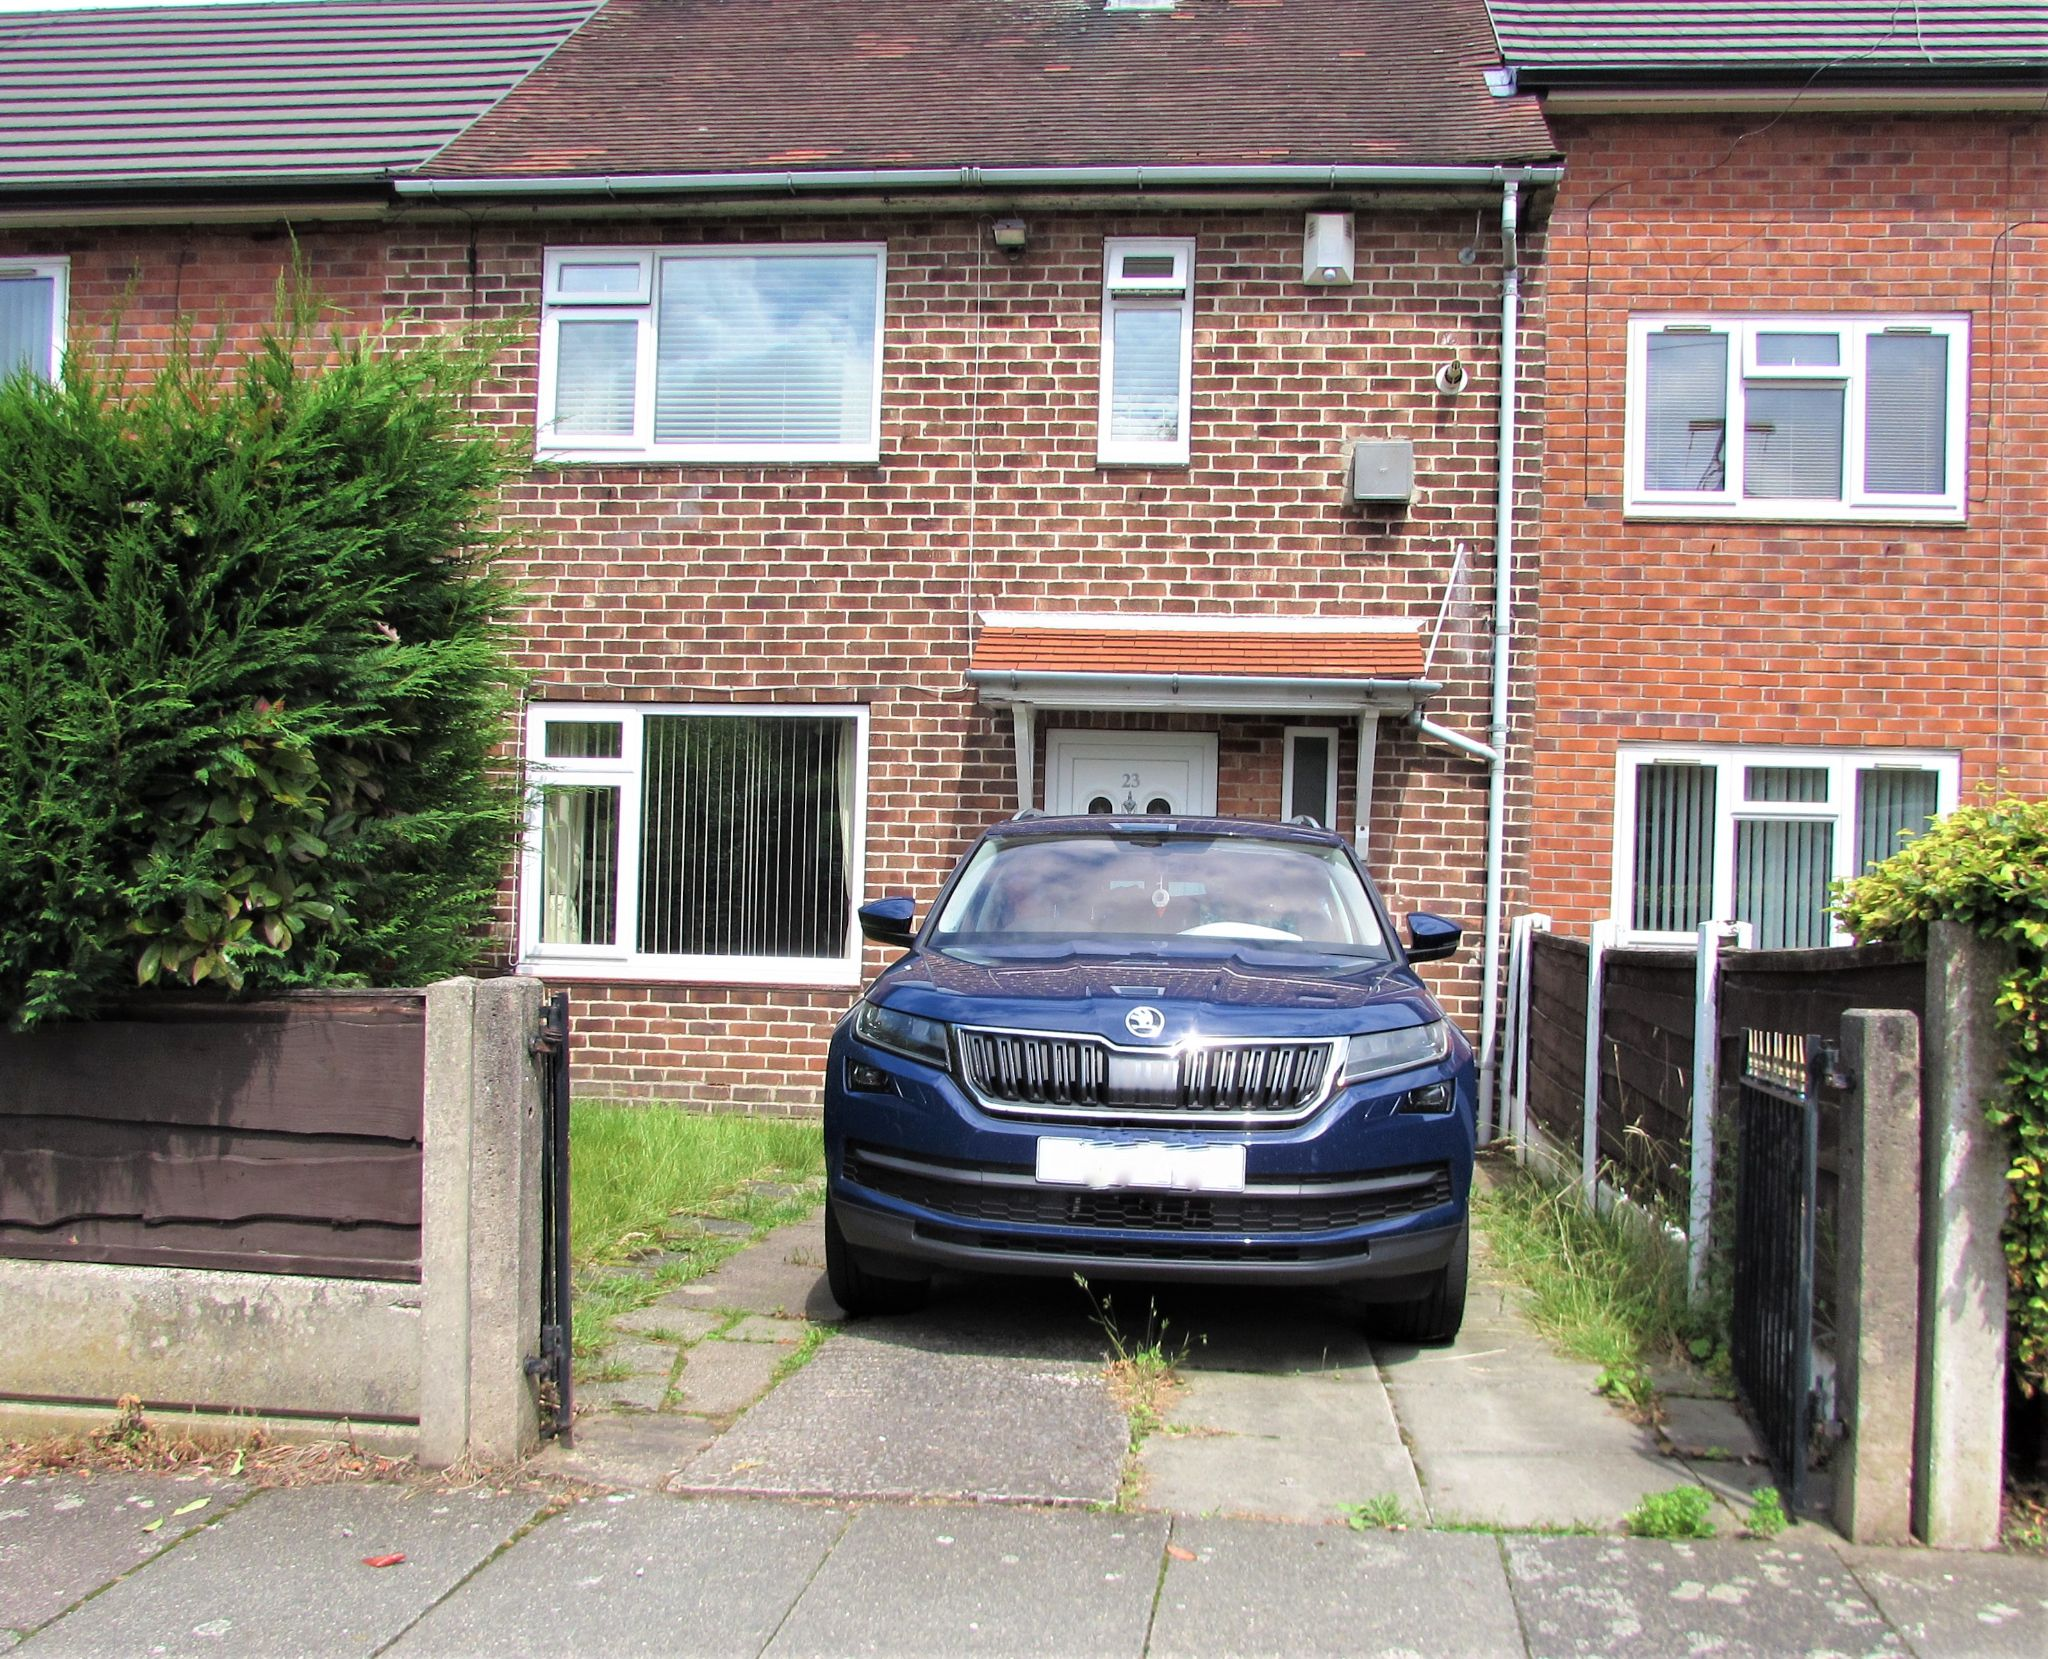 3 Bedroom Mid Terraced House For Sale - Frontage